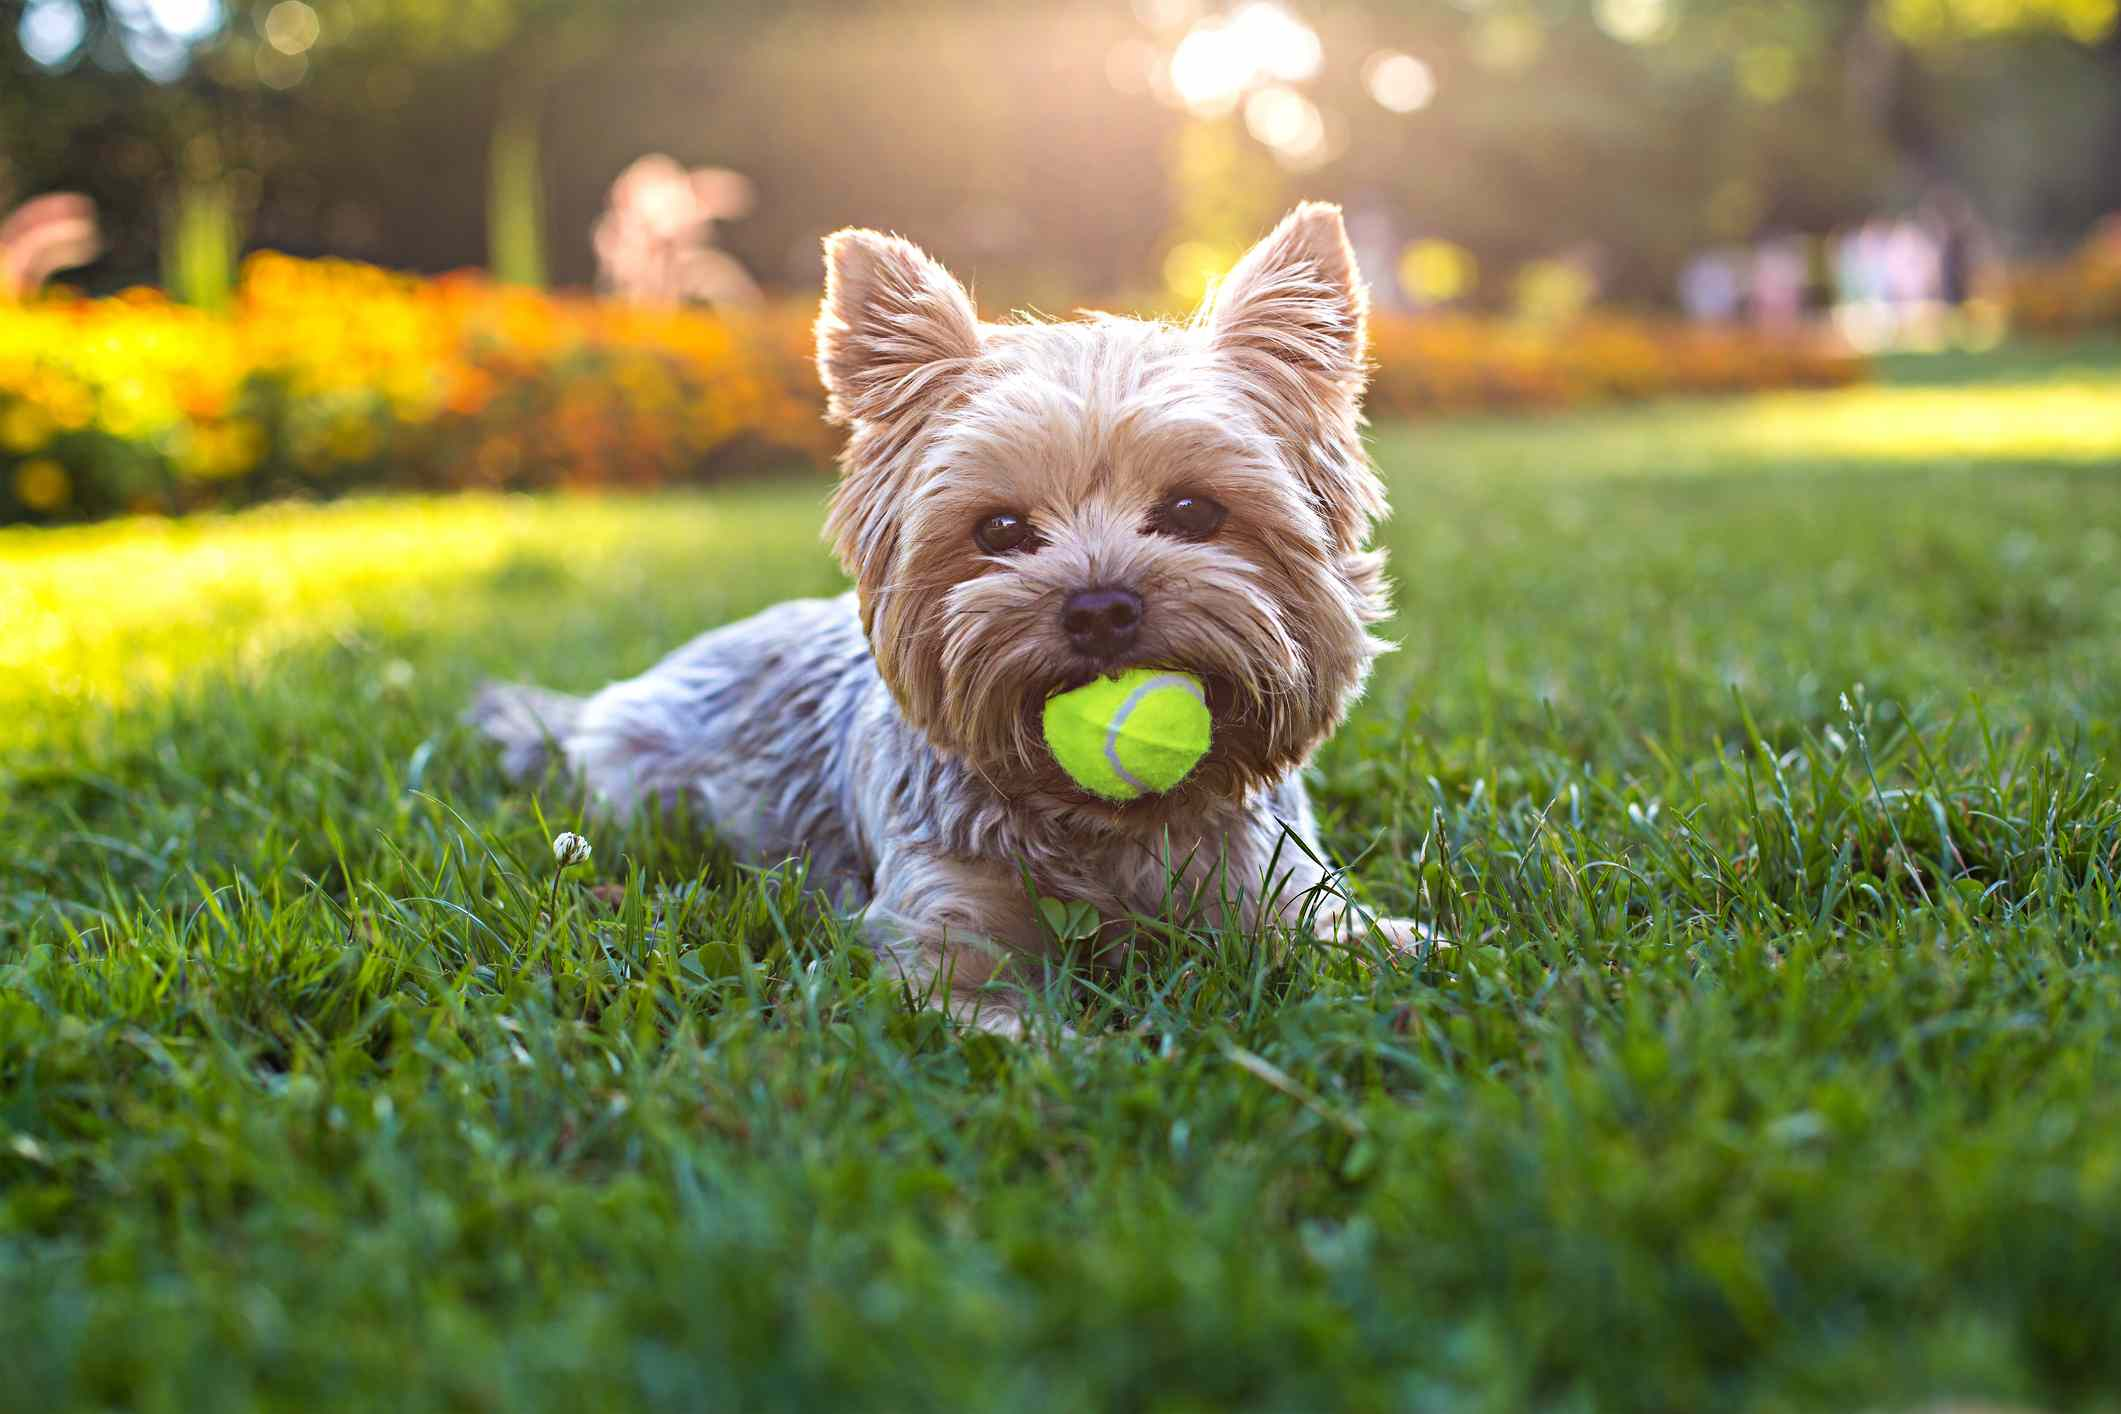 Yorkshire terrier in grass with tennis ball in mouth